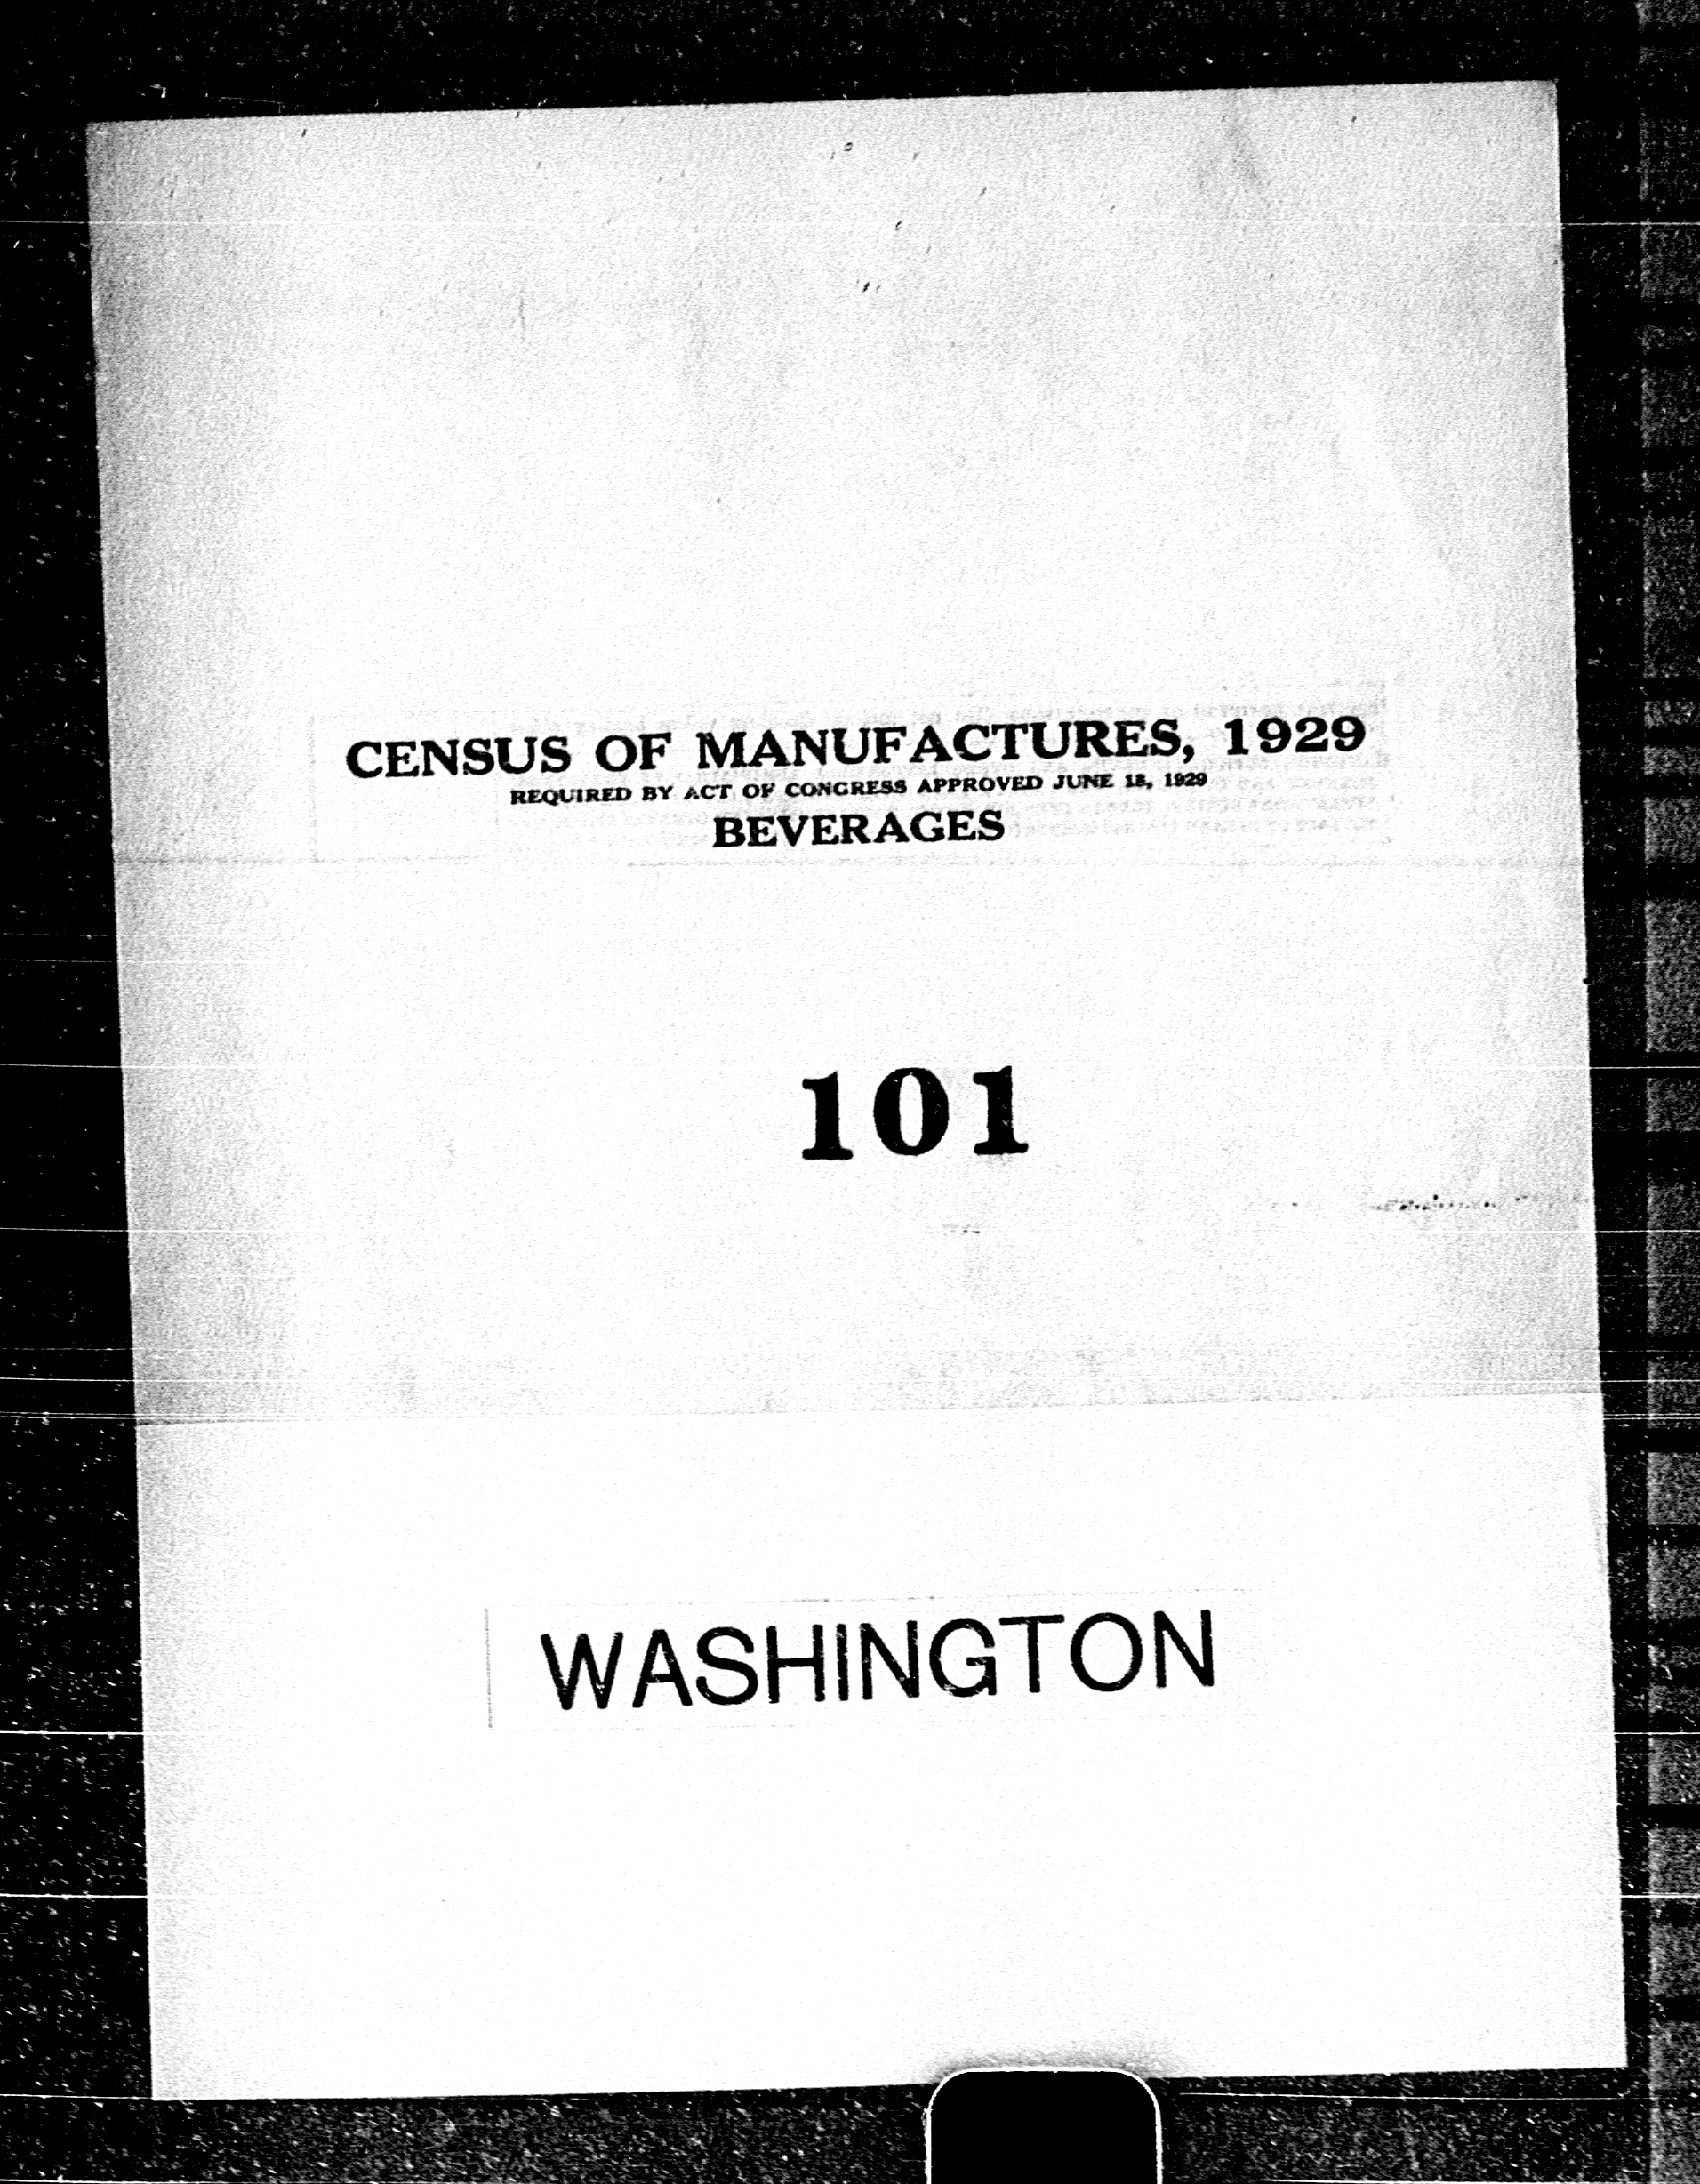 Washington: Industry No. 101 - Beverages